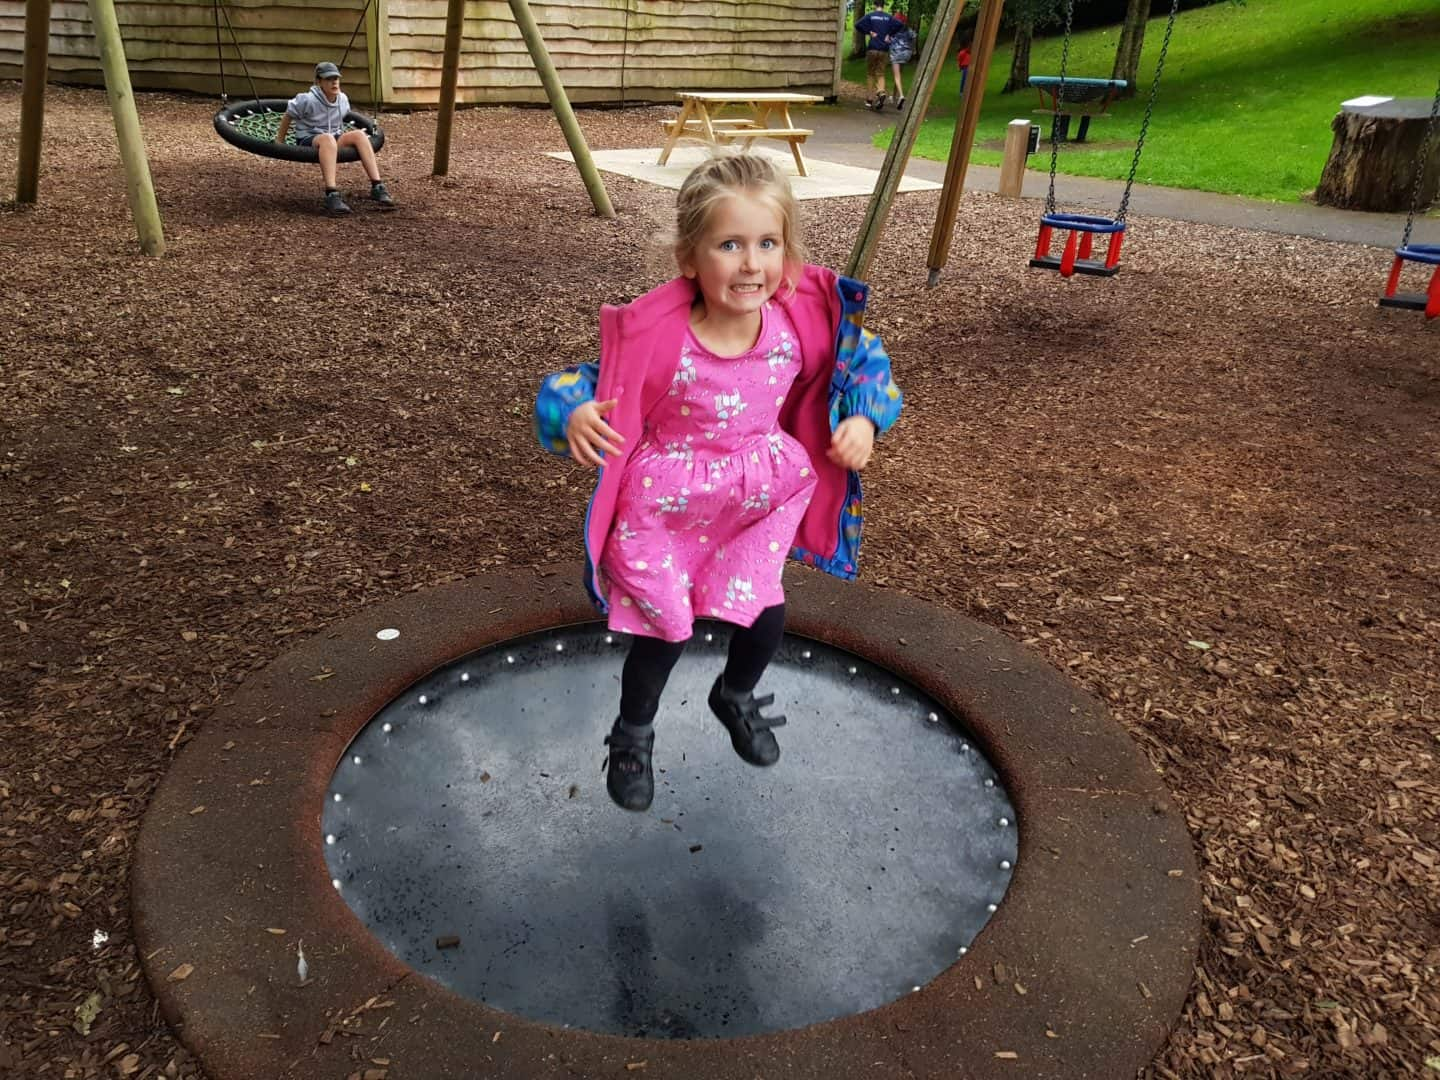 Little girl on trampoline in children's playground at Longleat Safari Park